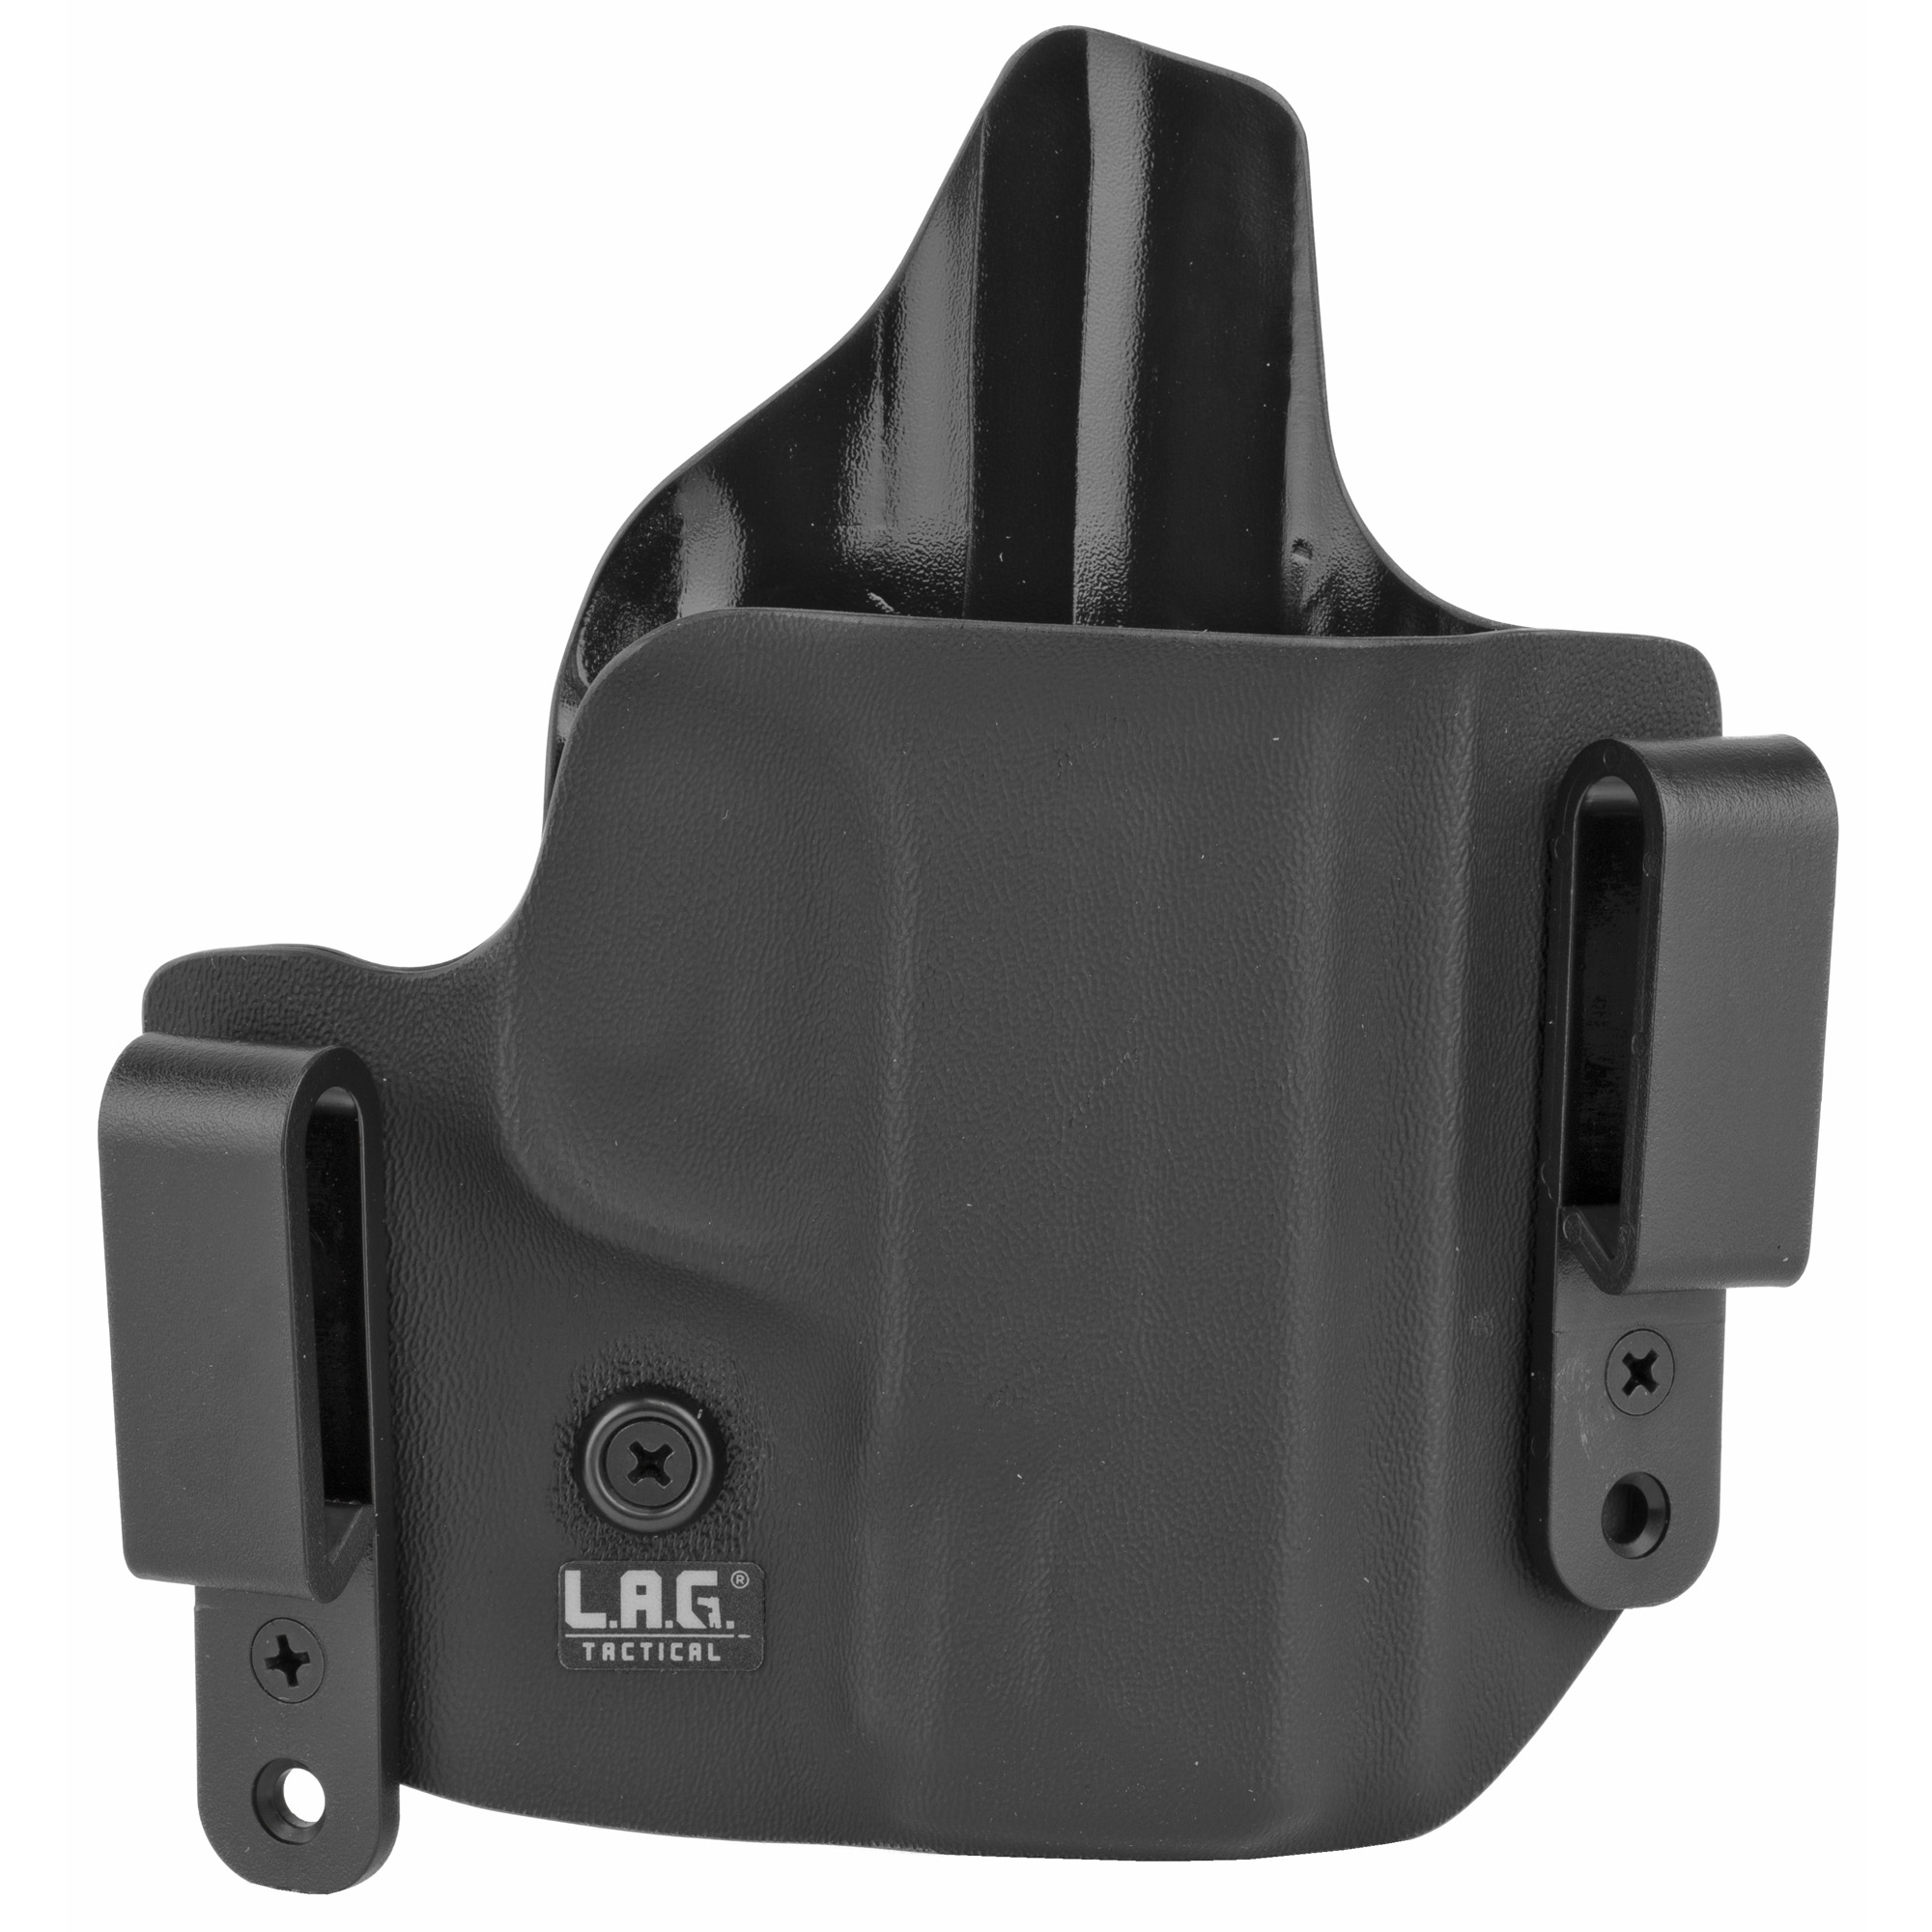 L.A.G. Tactical, Inc. S&W M&P Shield 45Acp Defender Right Hand Kydex Holster – Black